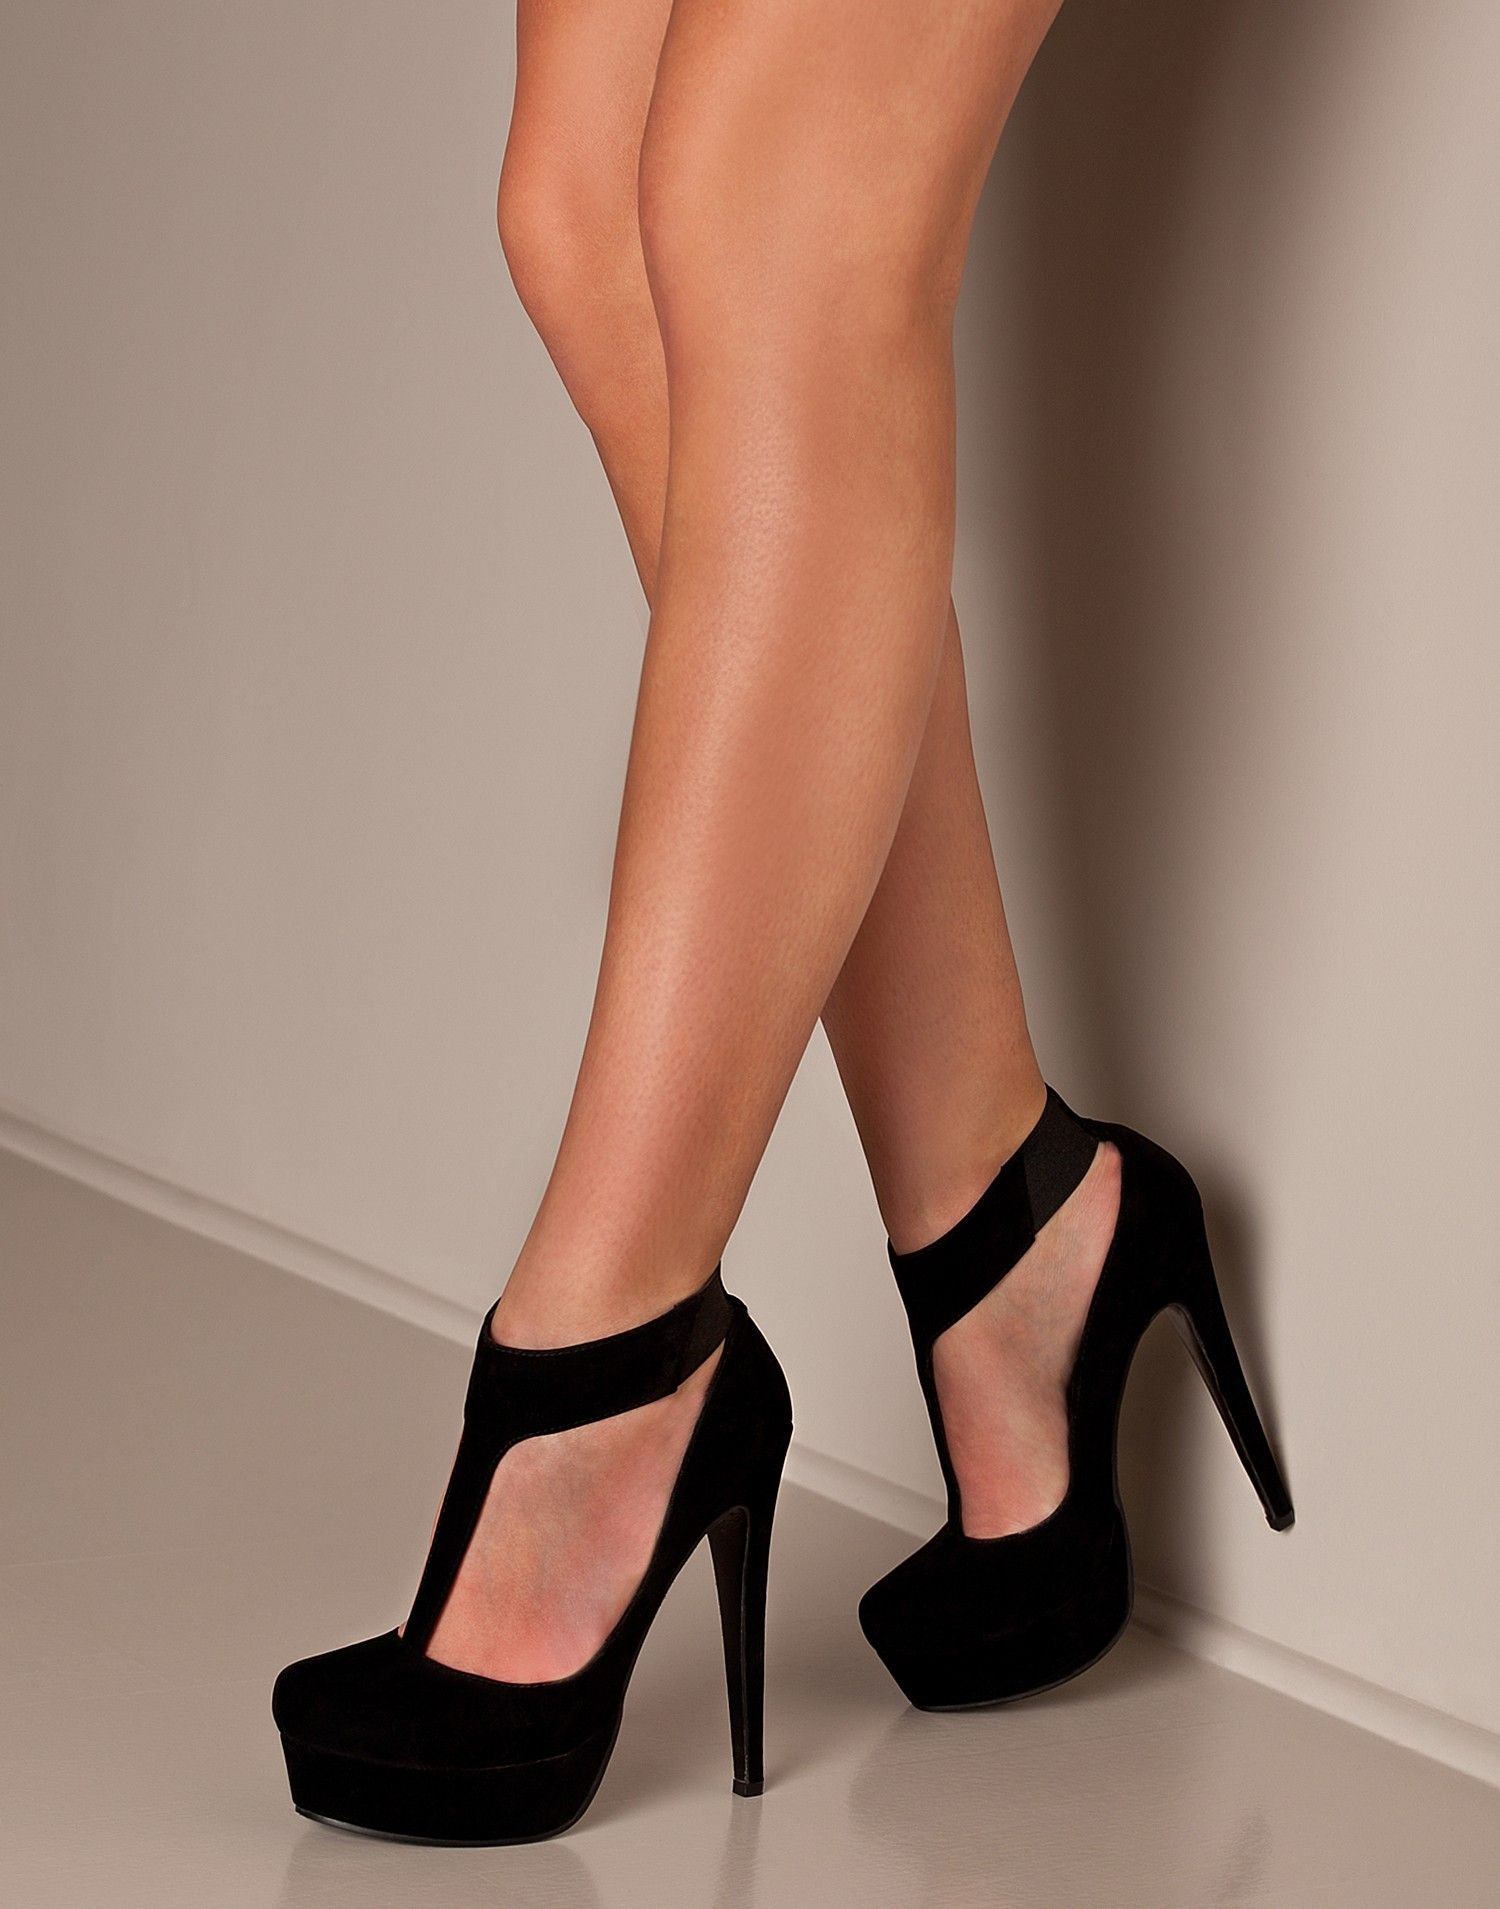 c7fc757aa2cd Black Heels ... These are basic